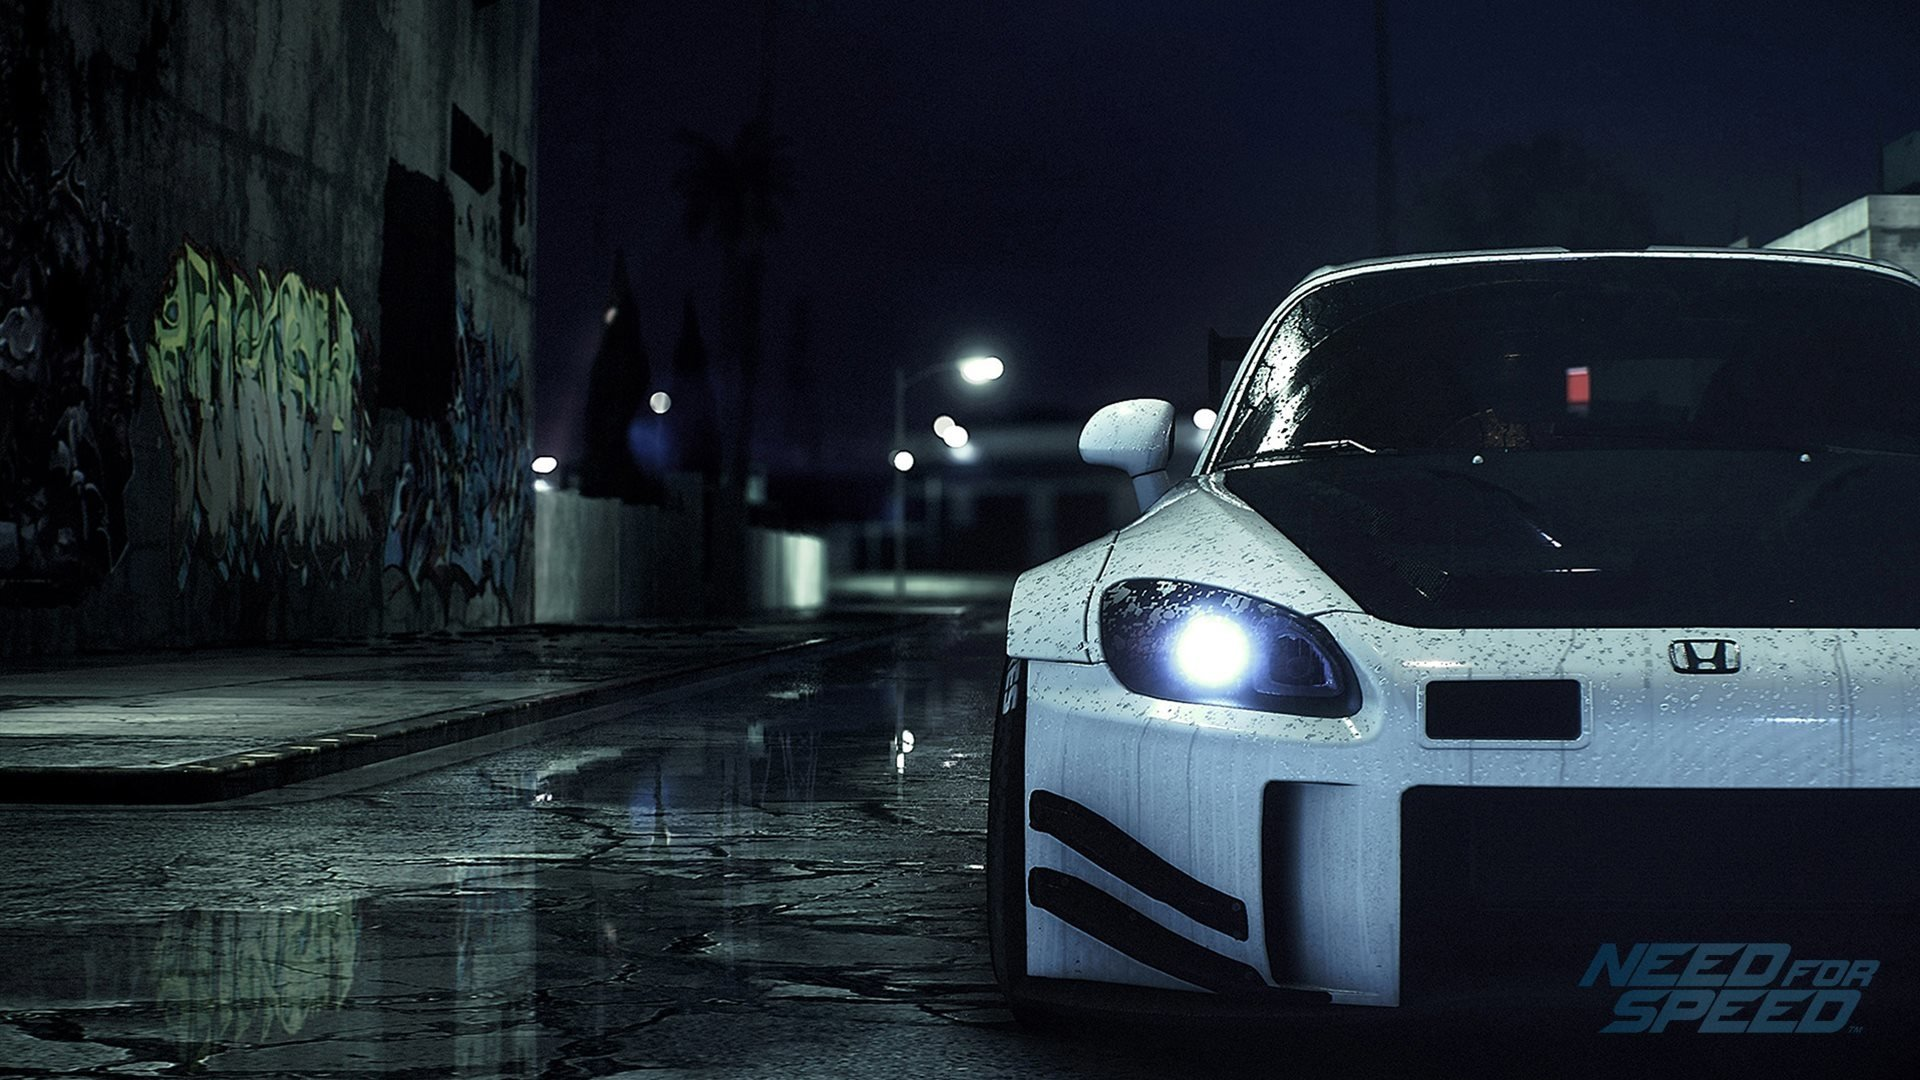 223 Need for Speed 2015 HD Wallpapers Background Images 1920x1080